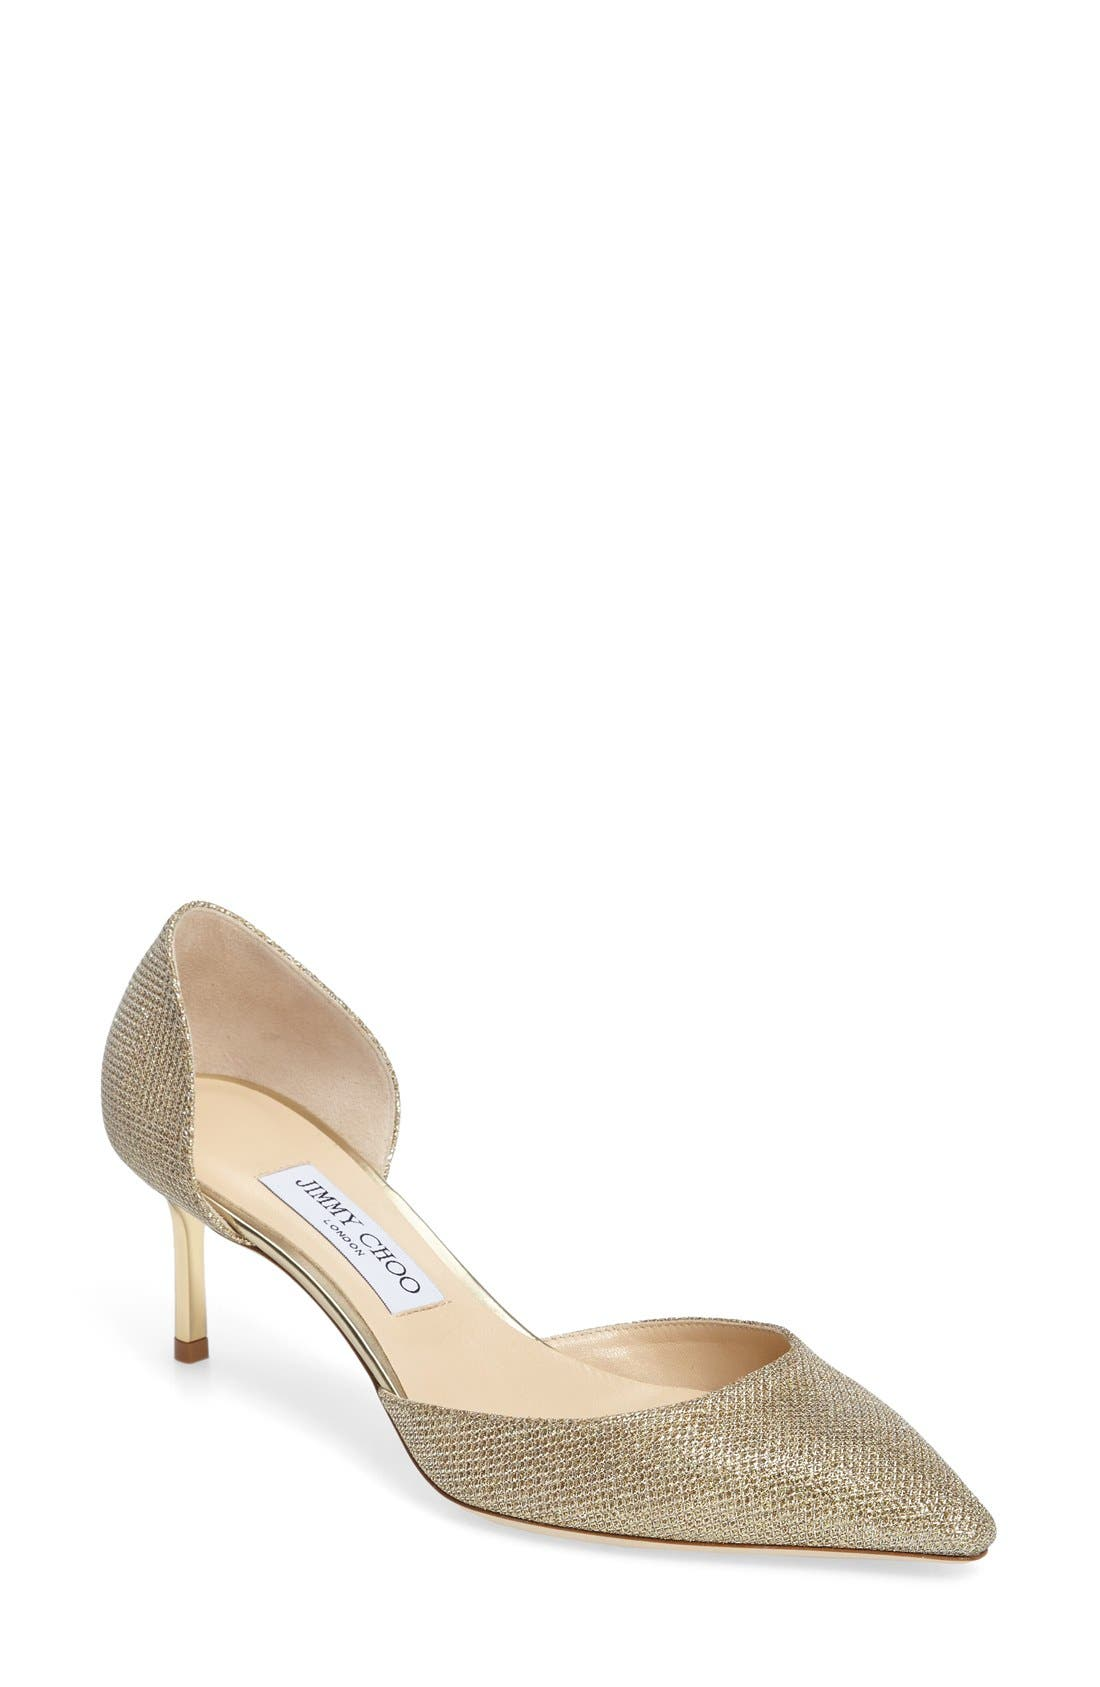 Alternate Image 1 Selected - Jimmy Choo Esther Pointy Toe Pump (Women)